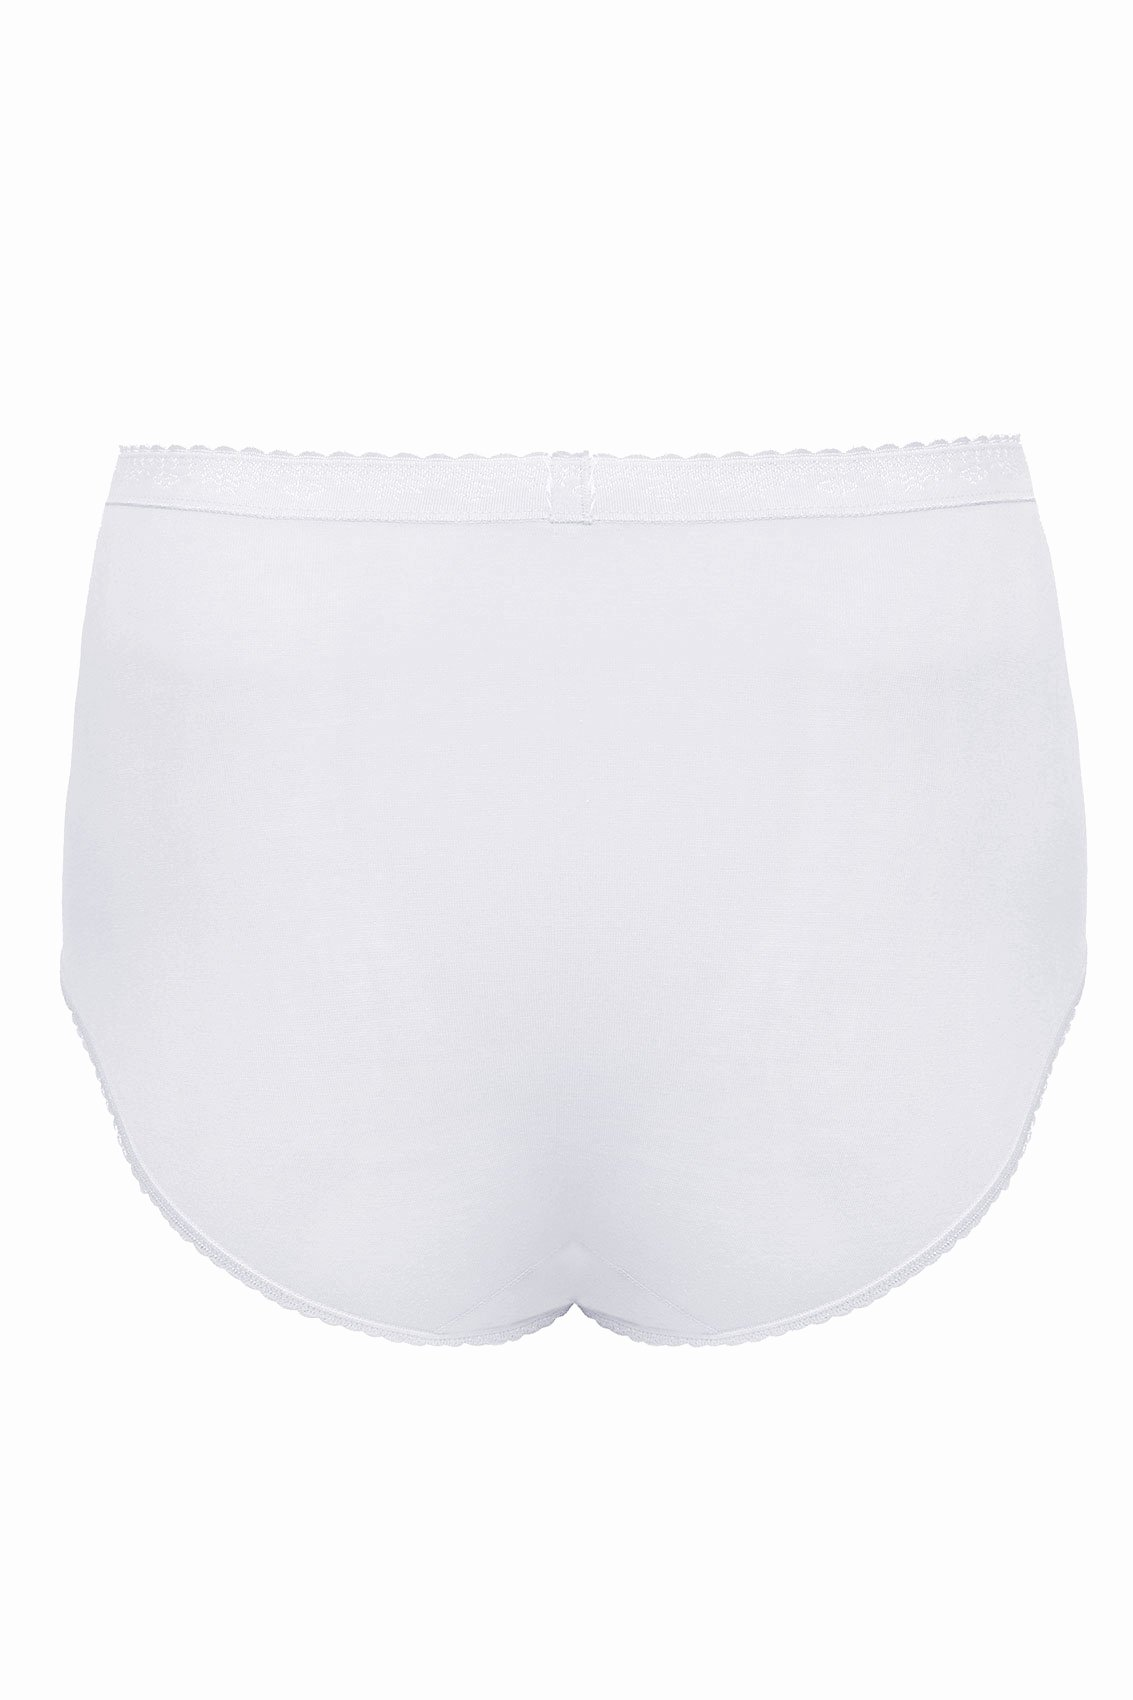 No Refund Policy Template Lovely Sloggi White Control Maxi Briefs 2 Pack Plus Size 16 18 20